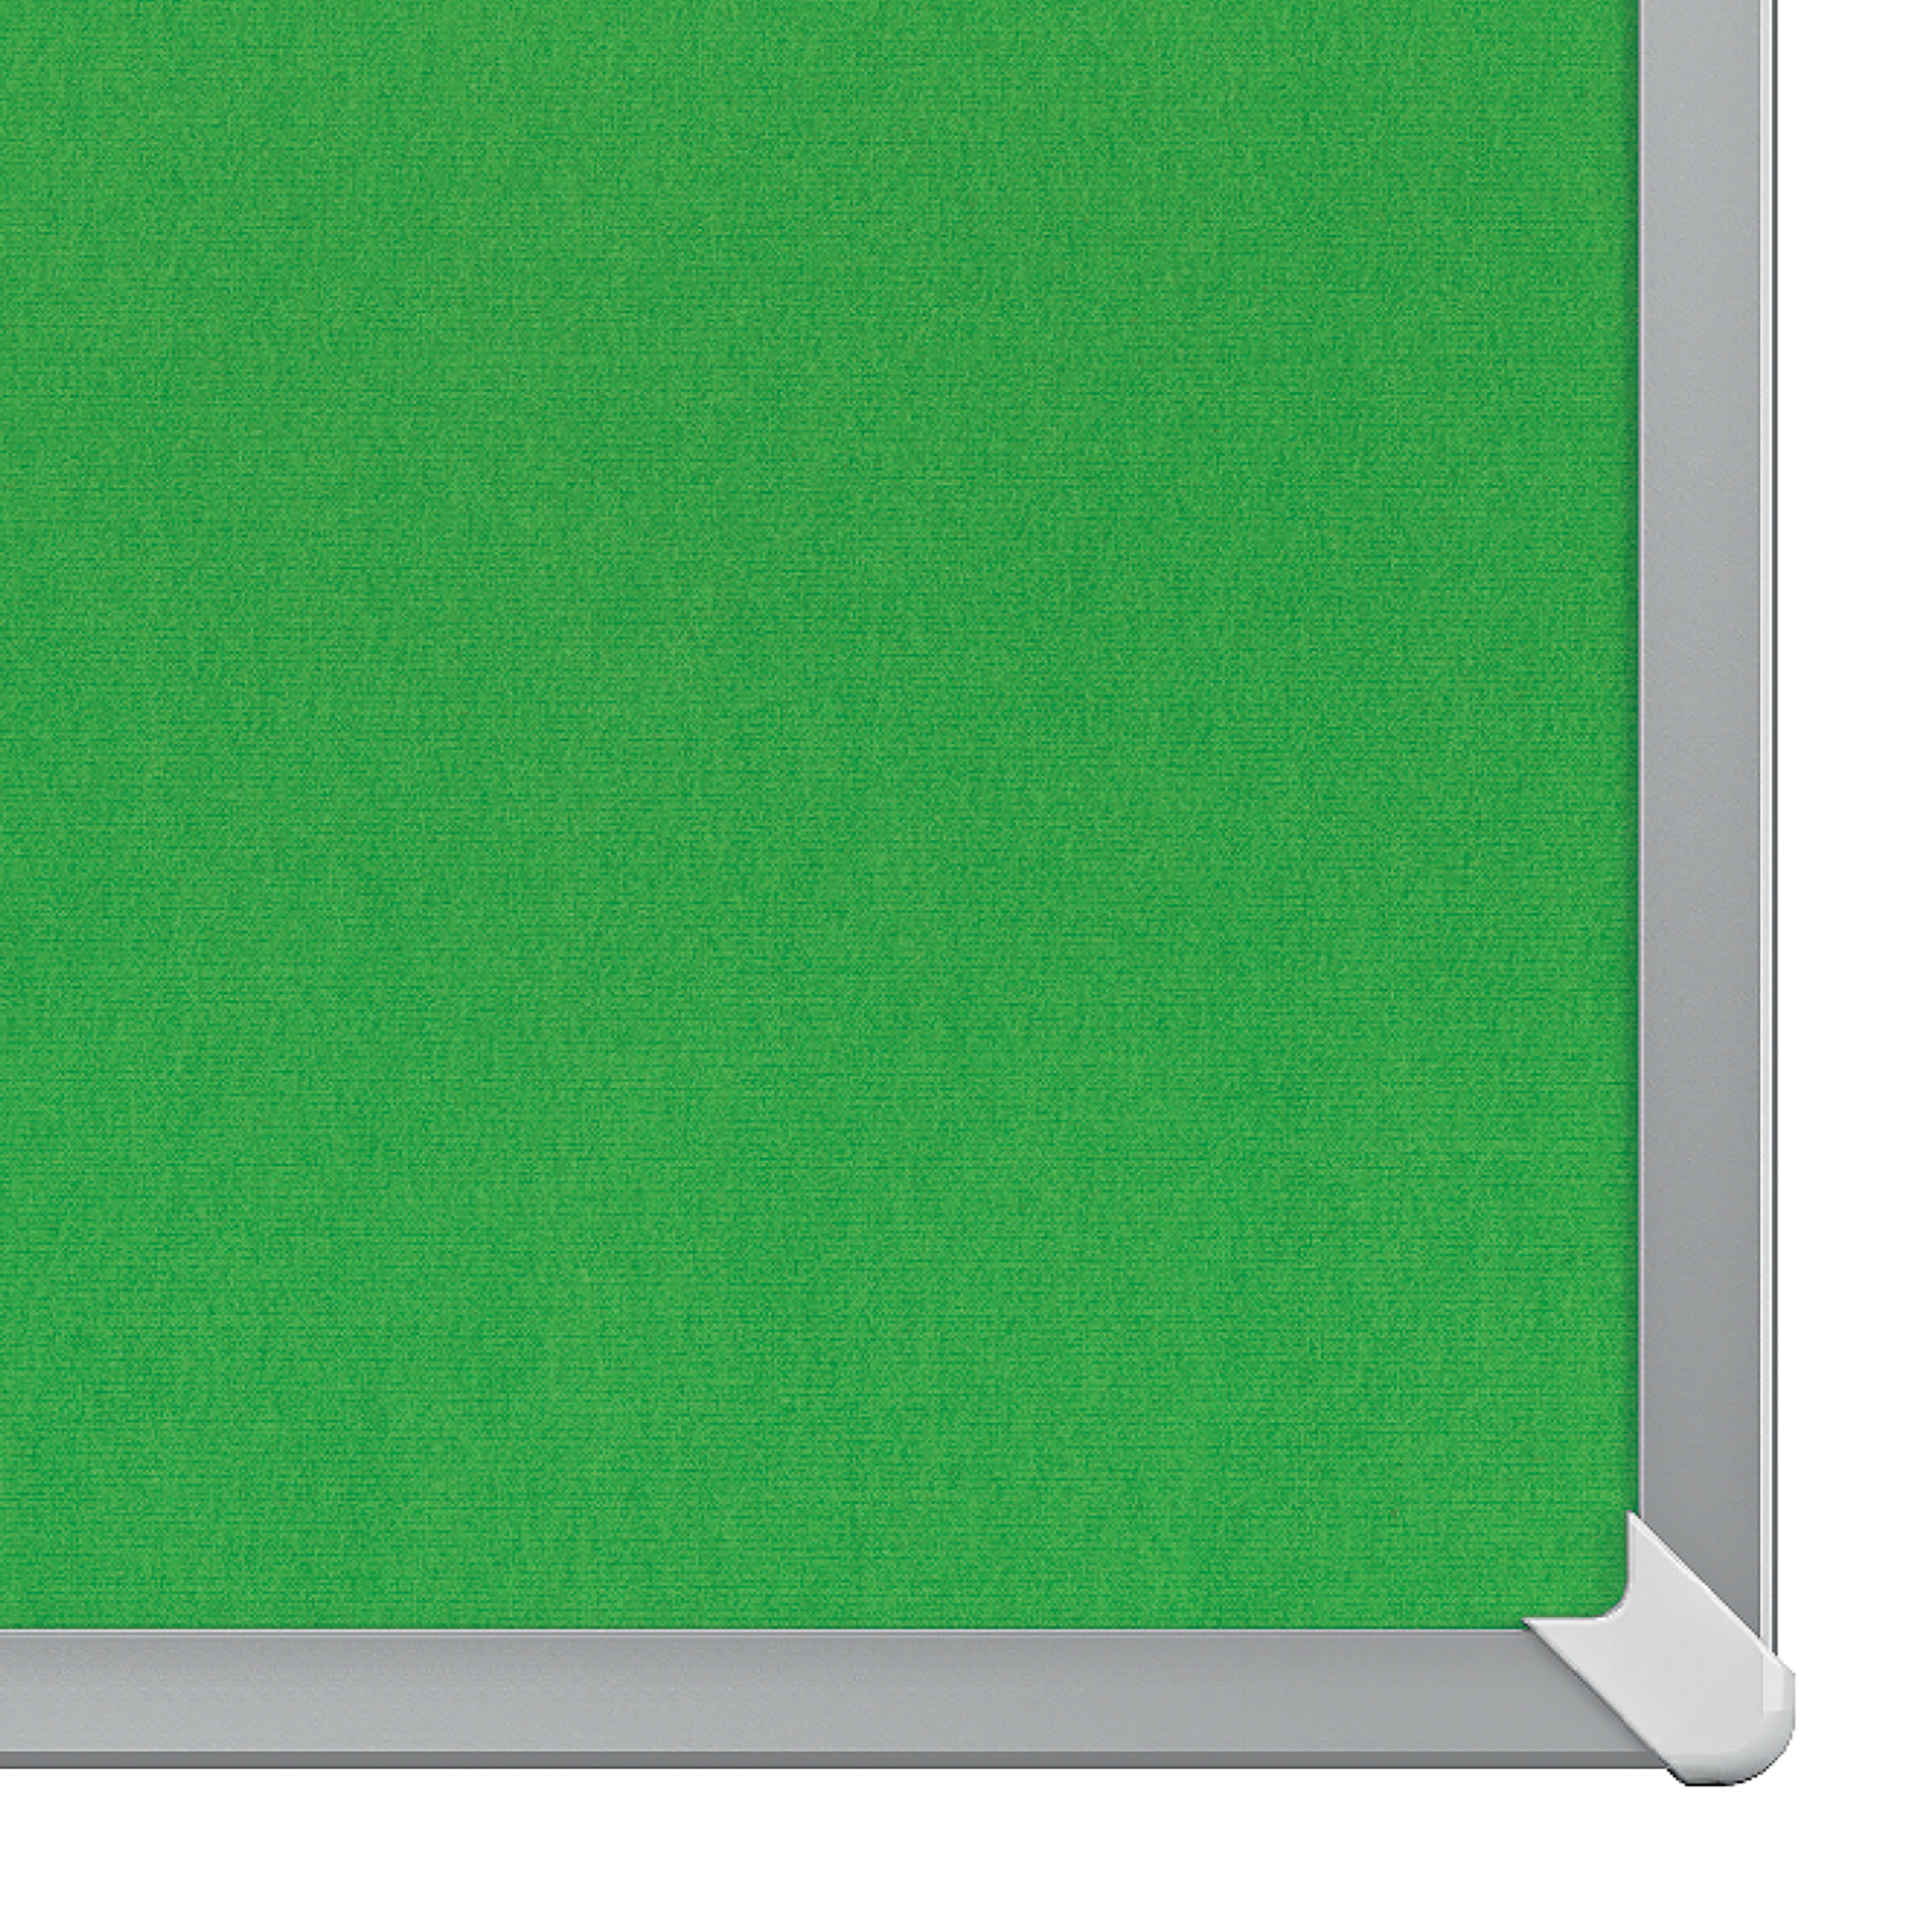 Bulletin boards or accessories Nobo 85 inch Widescreen Felt Board 1880x1060mm Green Ref 1905317